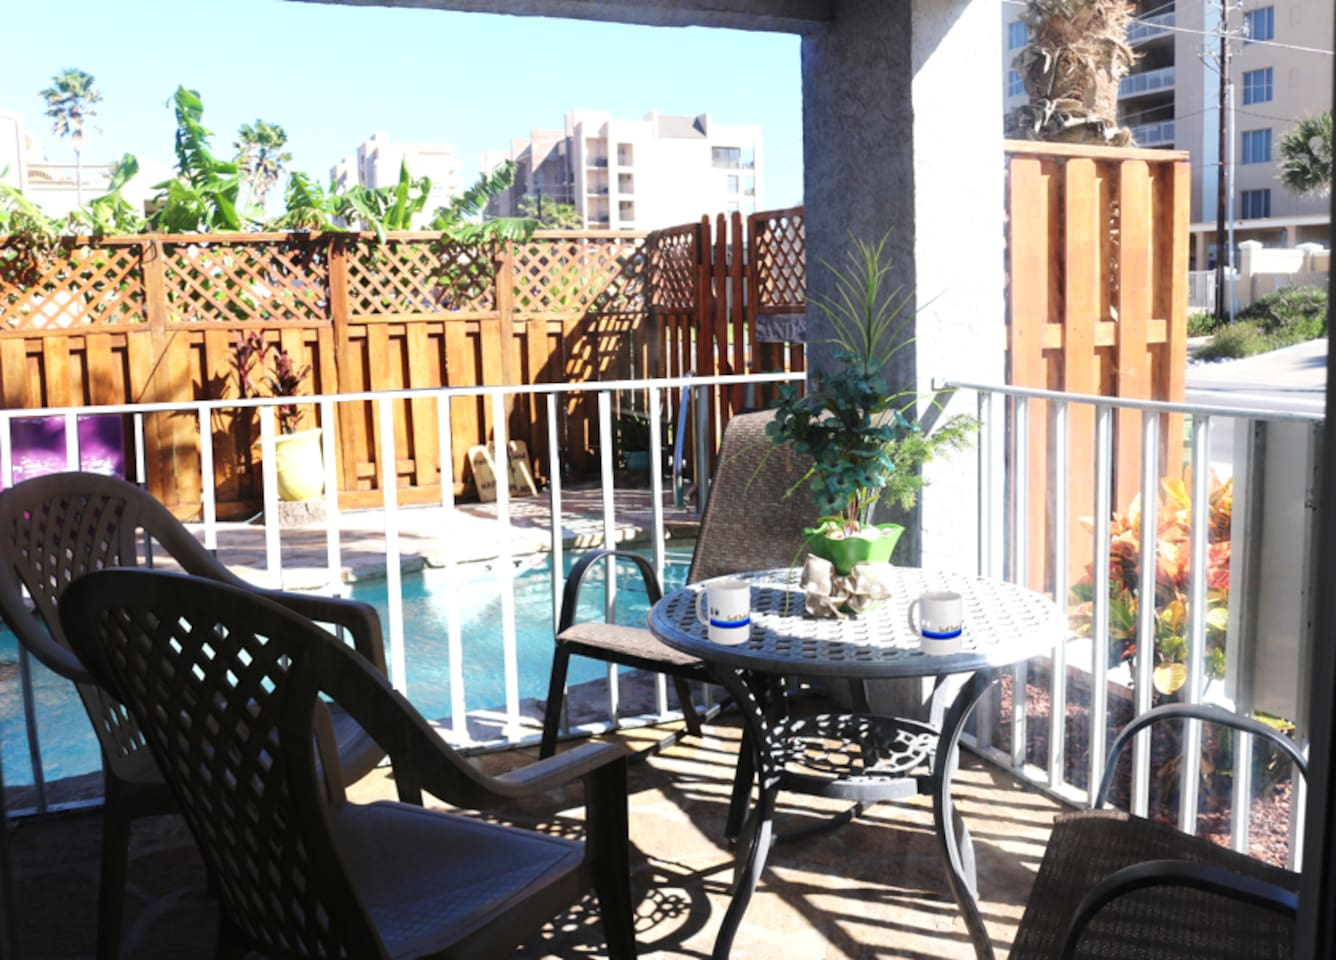 Enjoy a cup of morning coffee while overlooking the pool and Gulf Blvd.